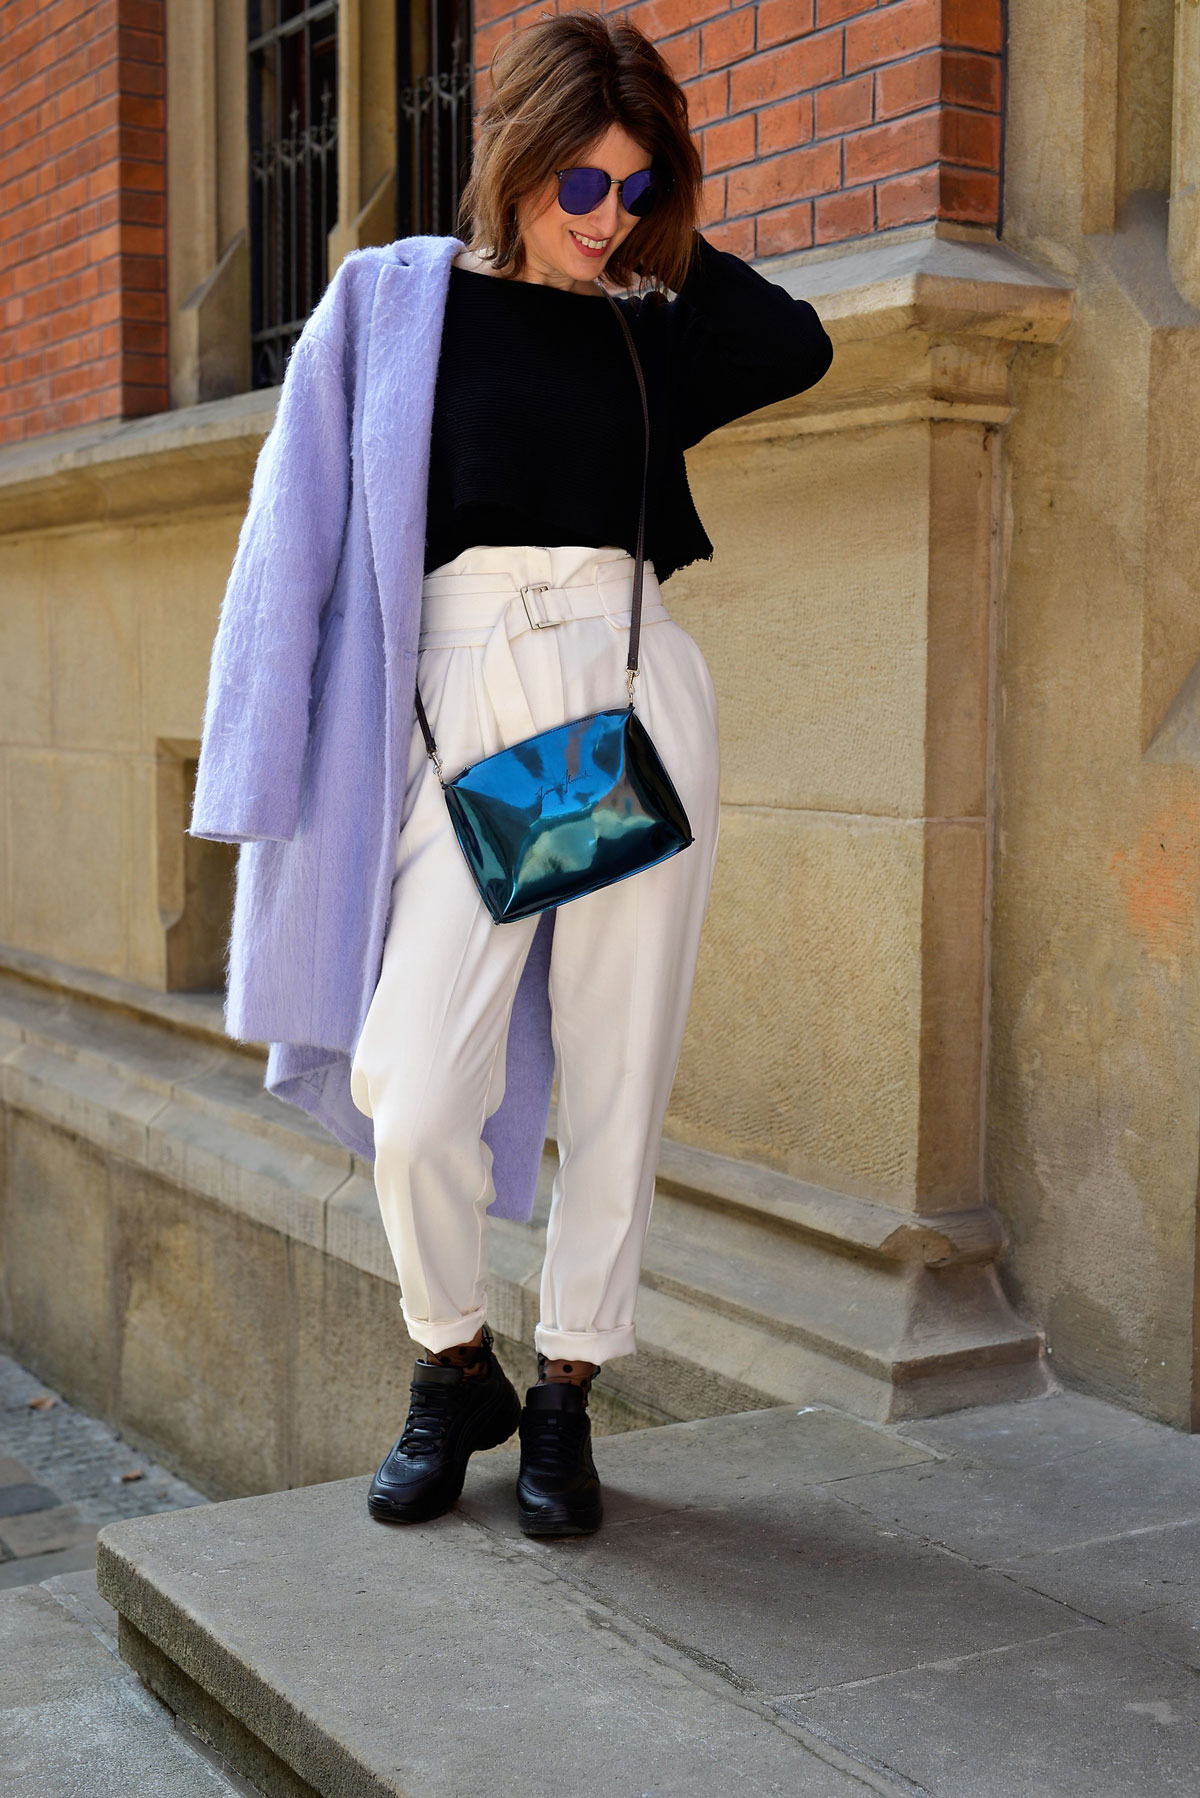 joanna_kruczek, ultraviolet, highwaist pants